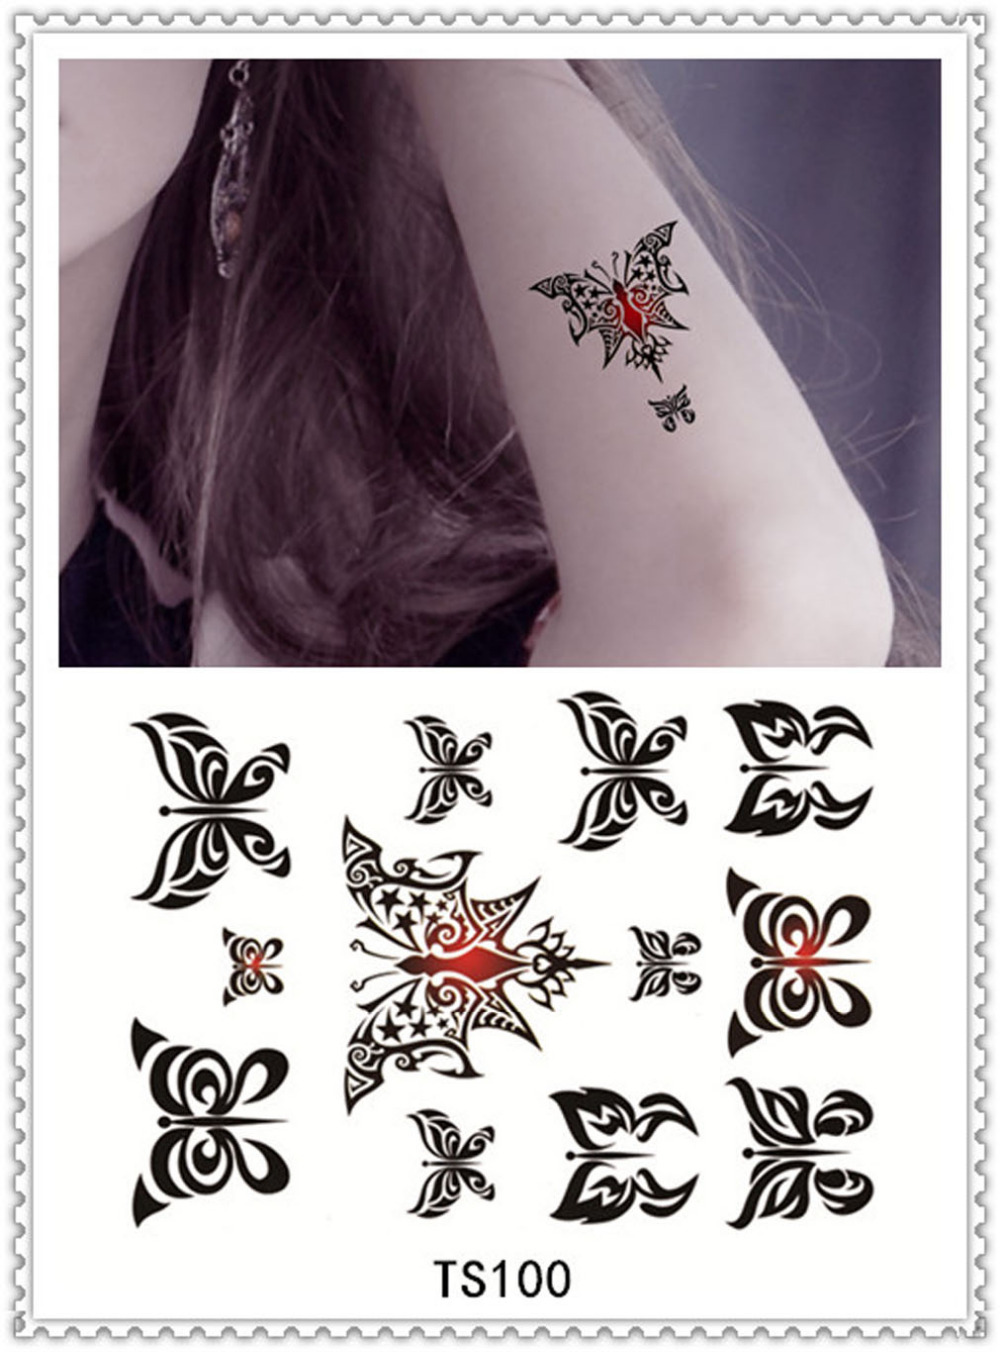 YEEECH Temporary Tattoos Sticker for Women Sex Products Body Art Tattoo Decals Black Butterfly Designs for Arm Leg Scar Cover